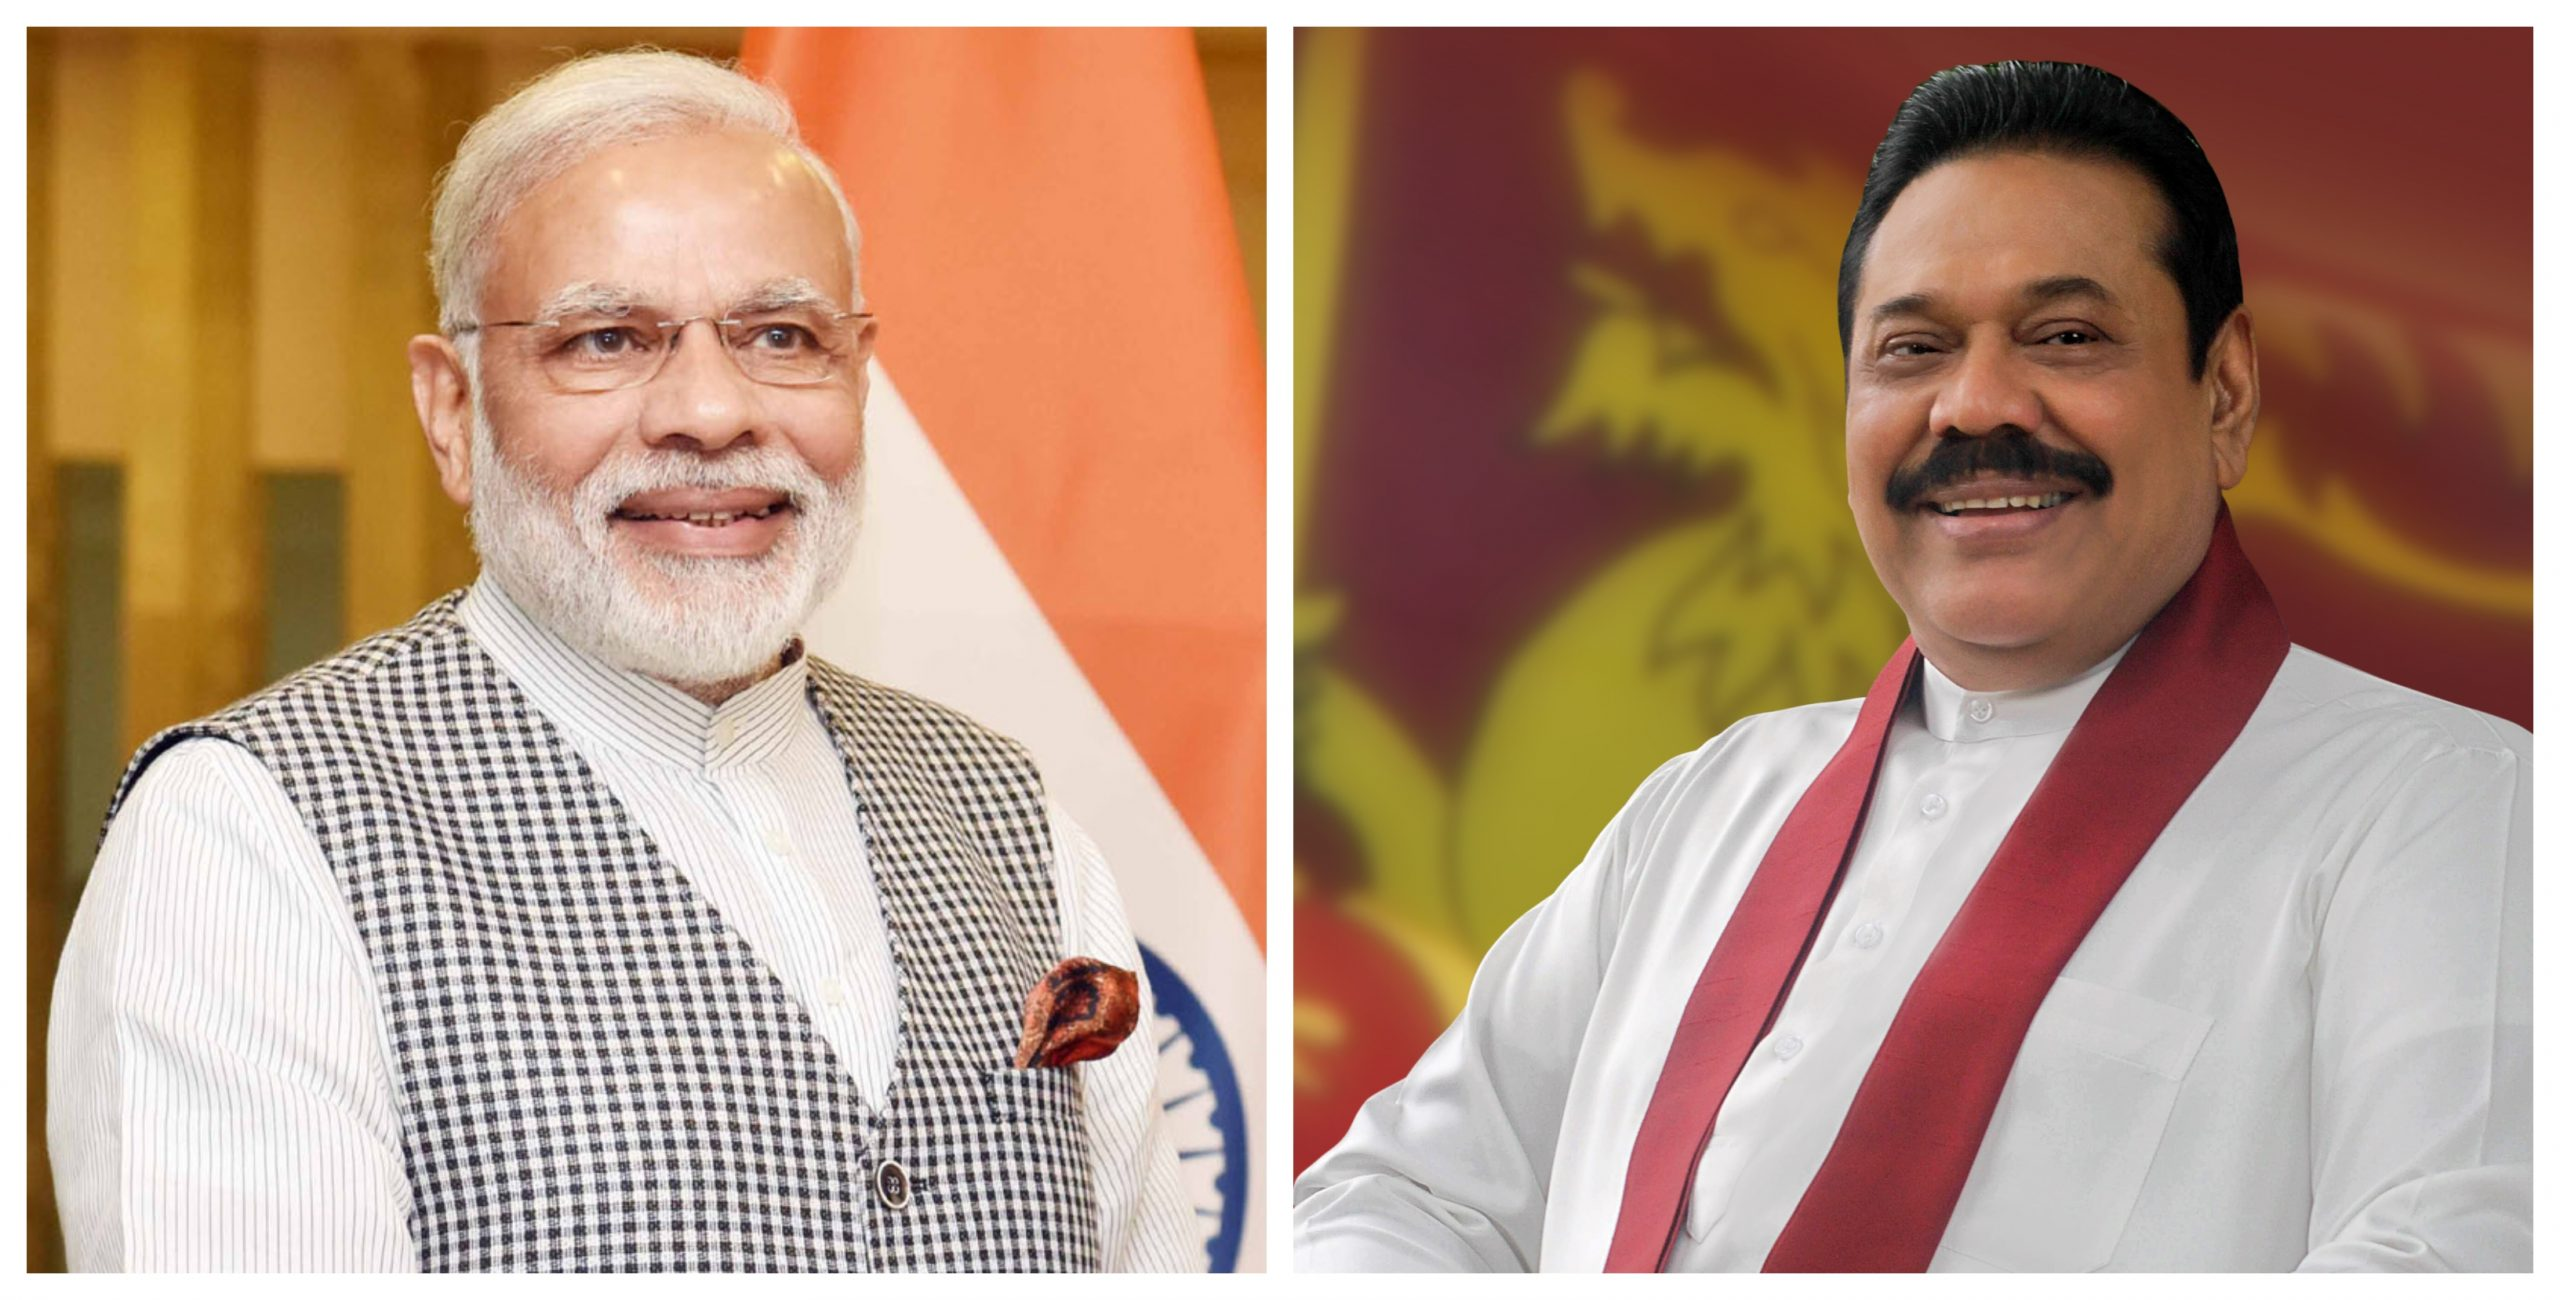 NEIGHBOURHOOD FIRST: Sri Lankan PM Mahinda Rajapaksa and Indian PM Narendra Modi had their first bilateral virtual Summit on saturday.